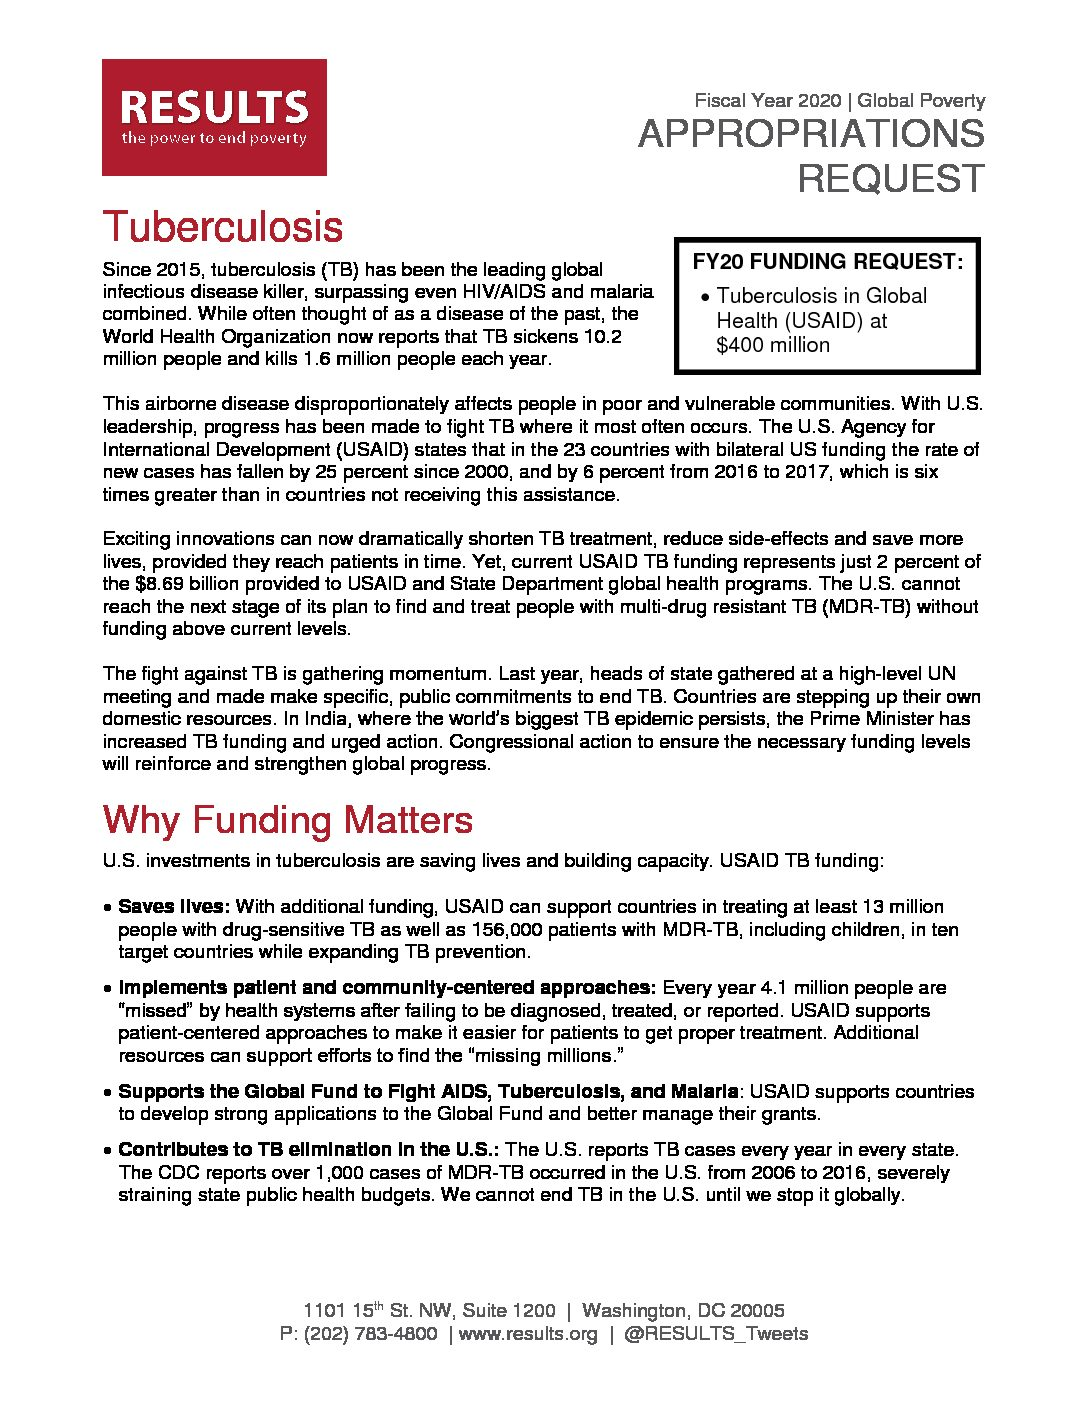 FY20 Tuberculosis Appropriations Request